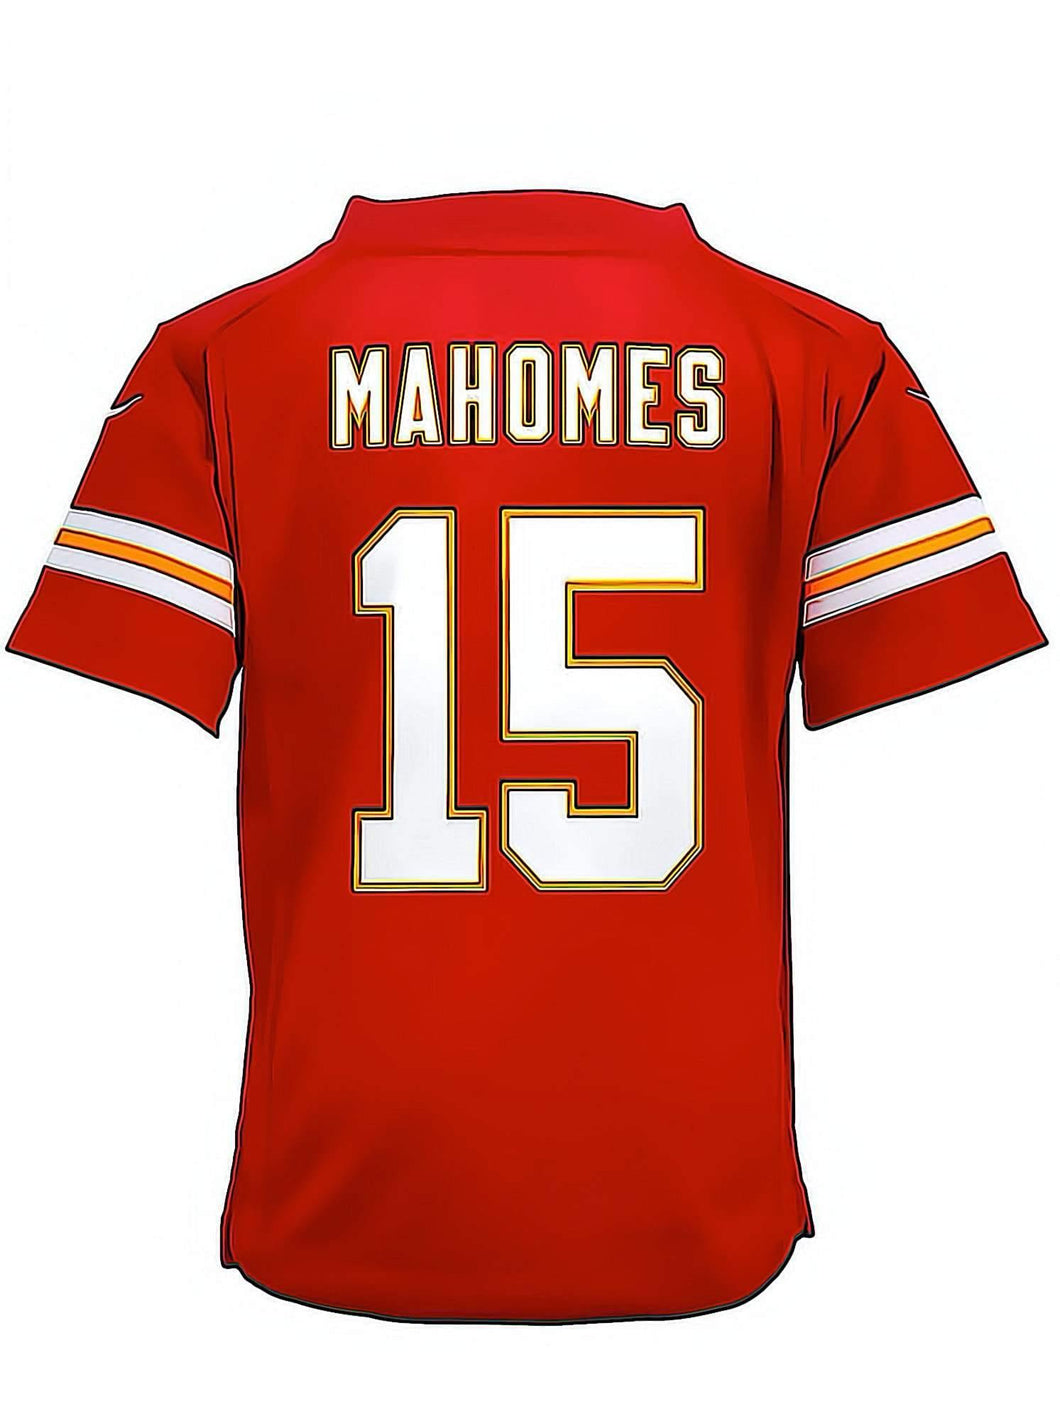 NFL Jersey Mahomes 15 Diamond Painting